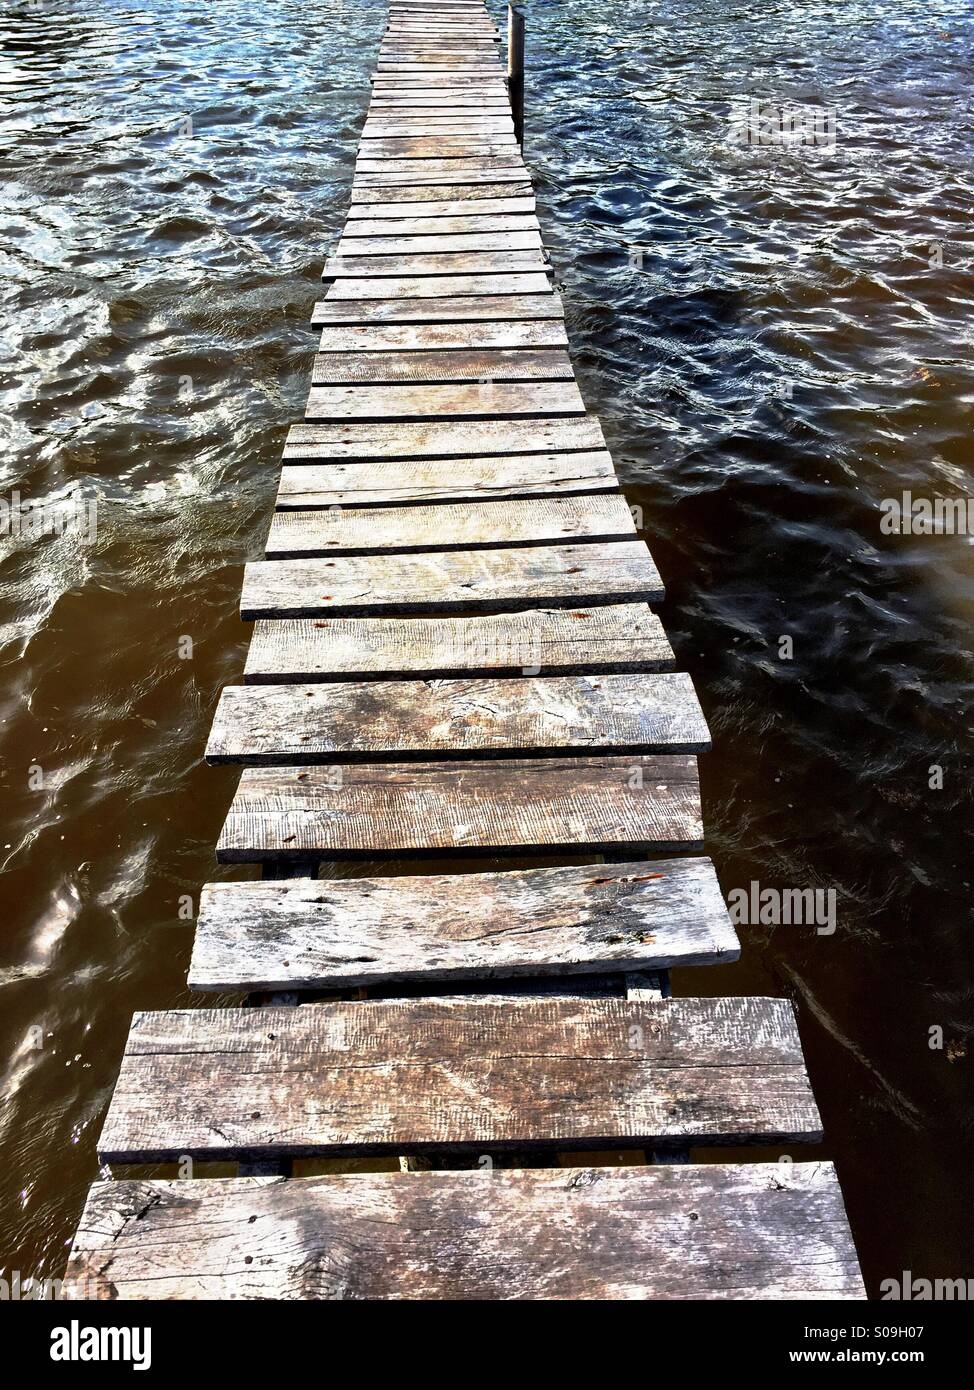 Rickety dock across water. - Stock Image